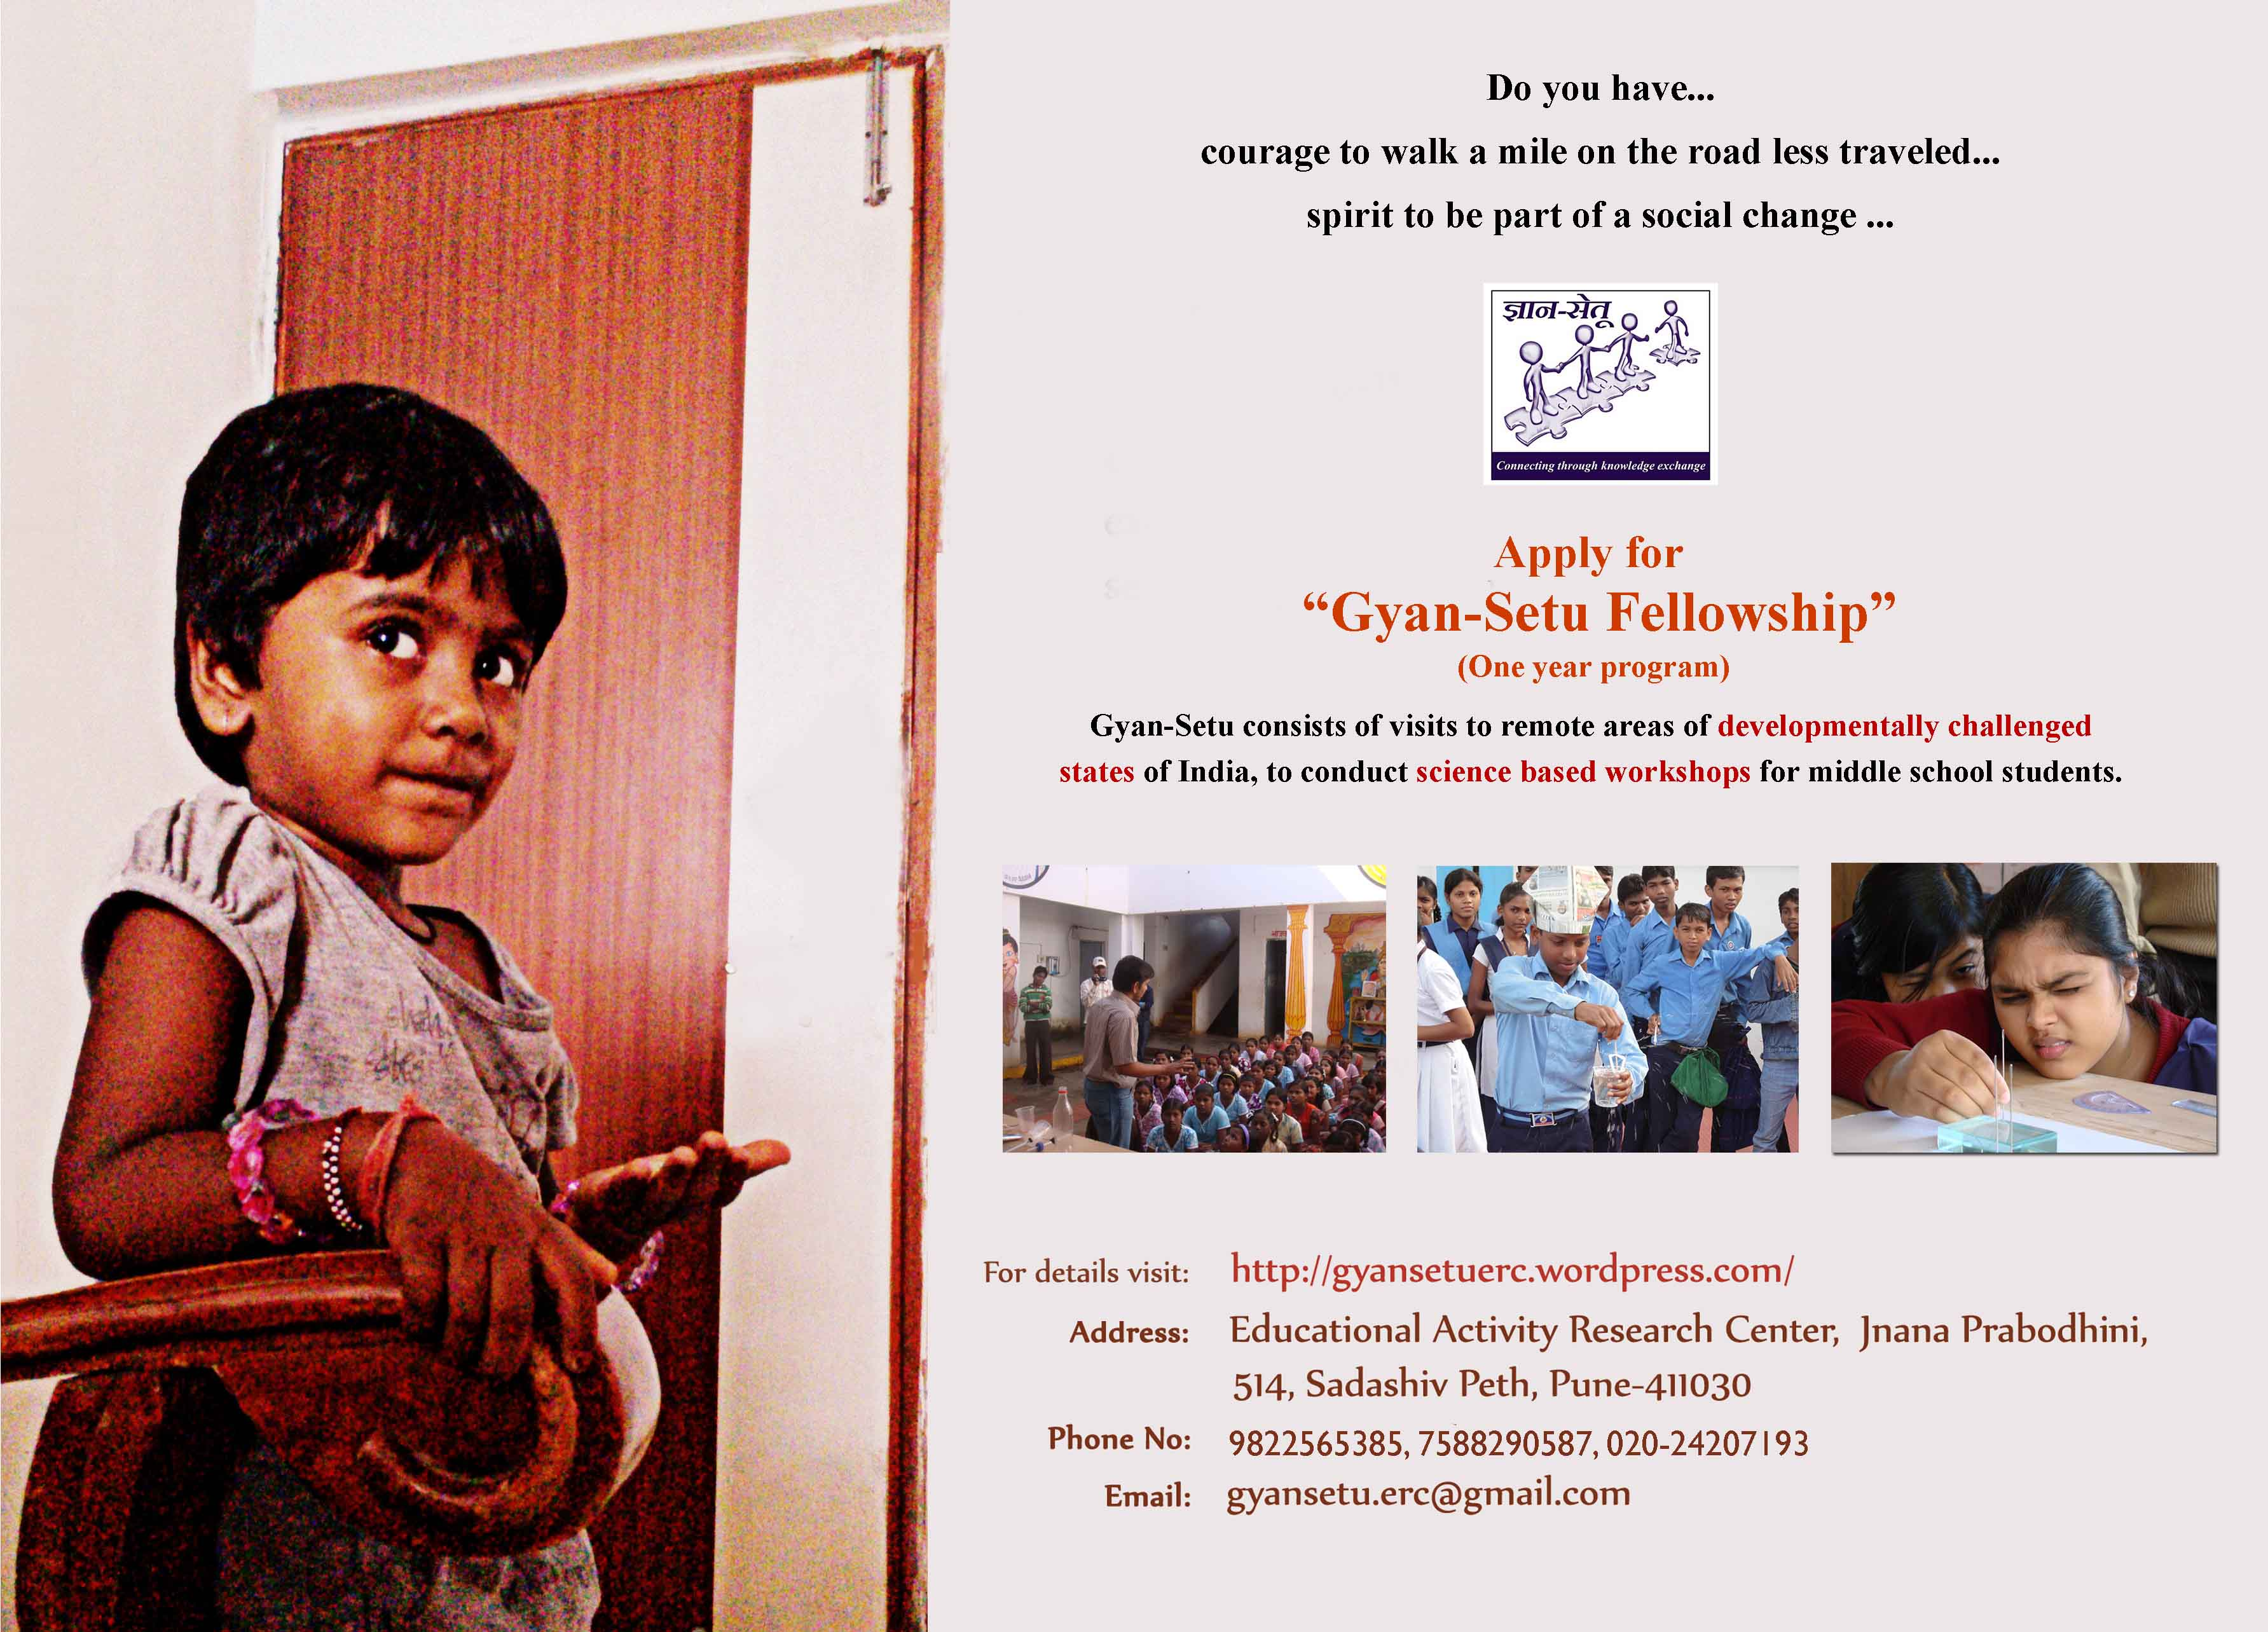 One Year 'Gyan Setu' Fellowship Program [Pune]: Apply by April 15, Basic Stipend Rs.15000, Accommodation and Food Provided